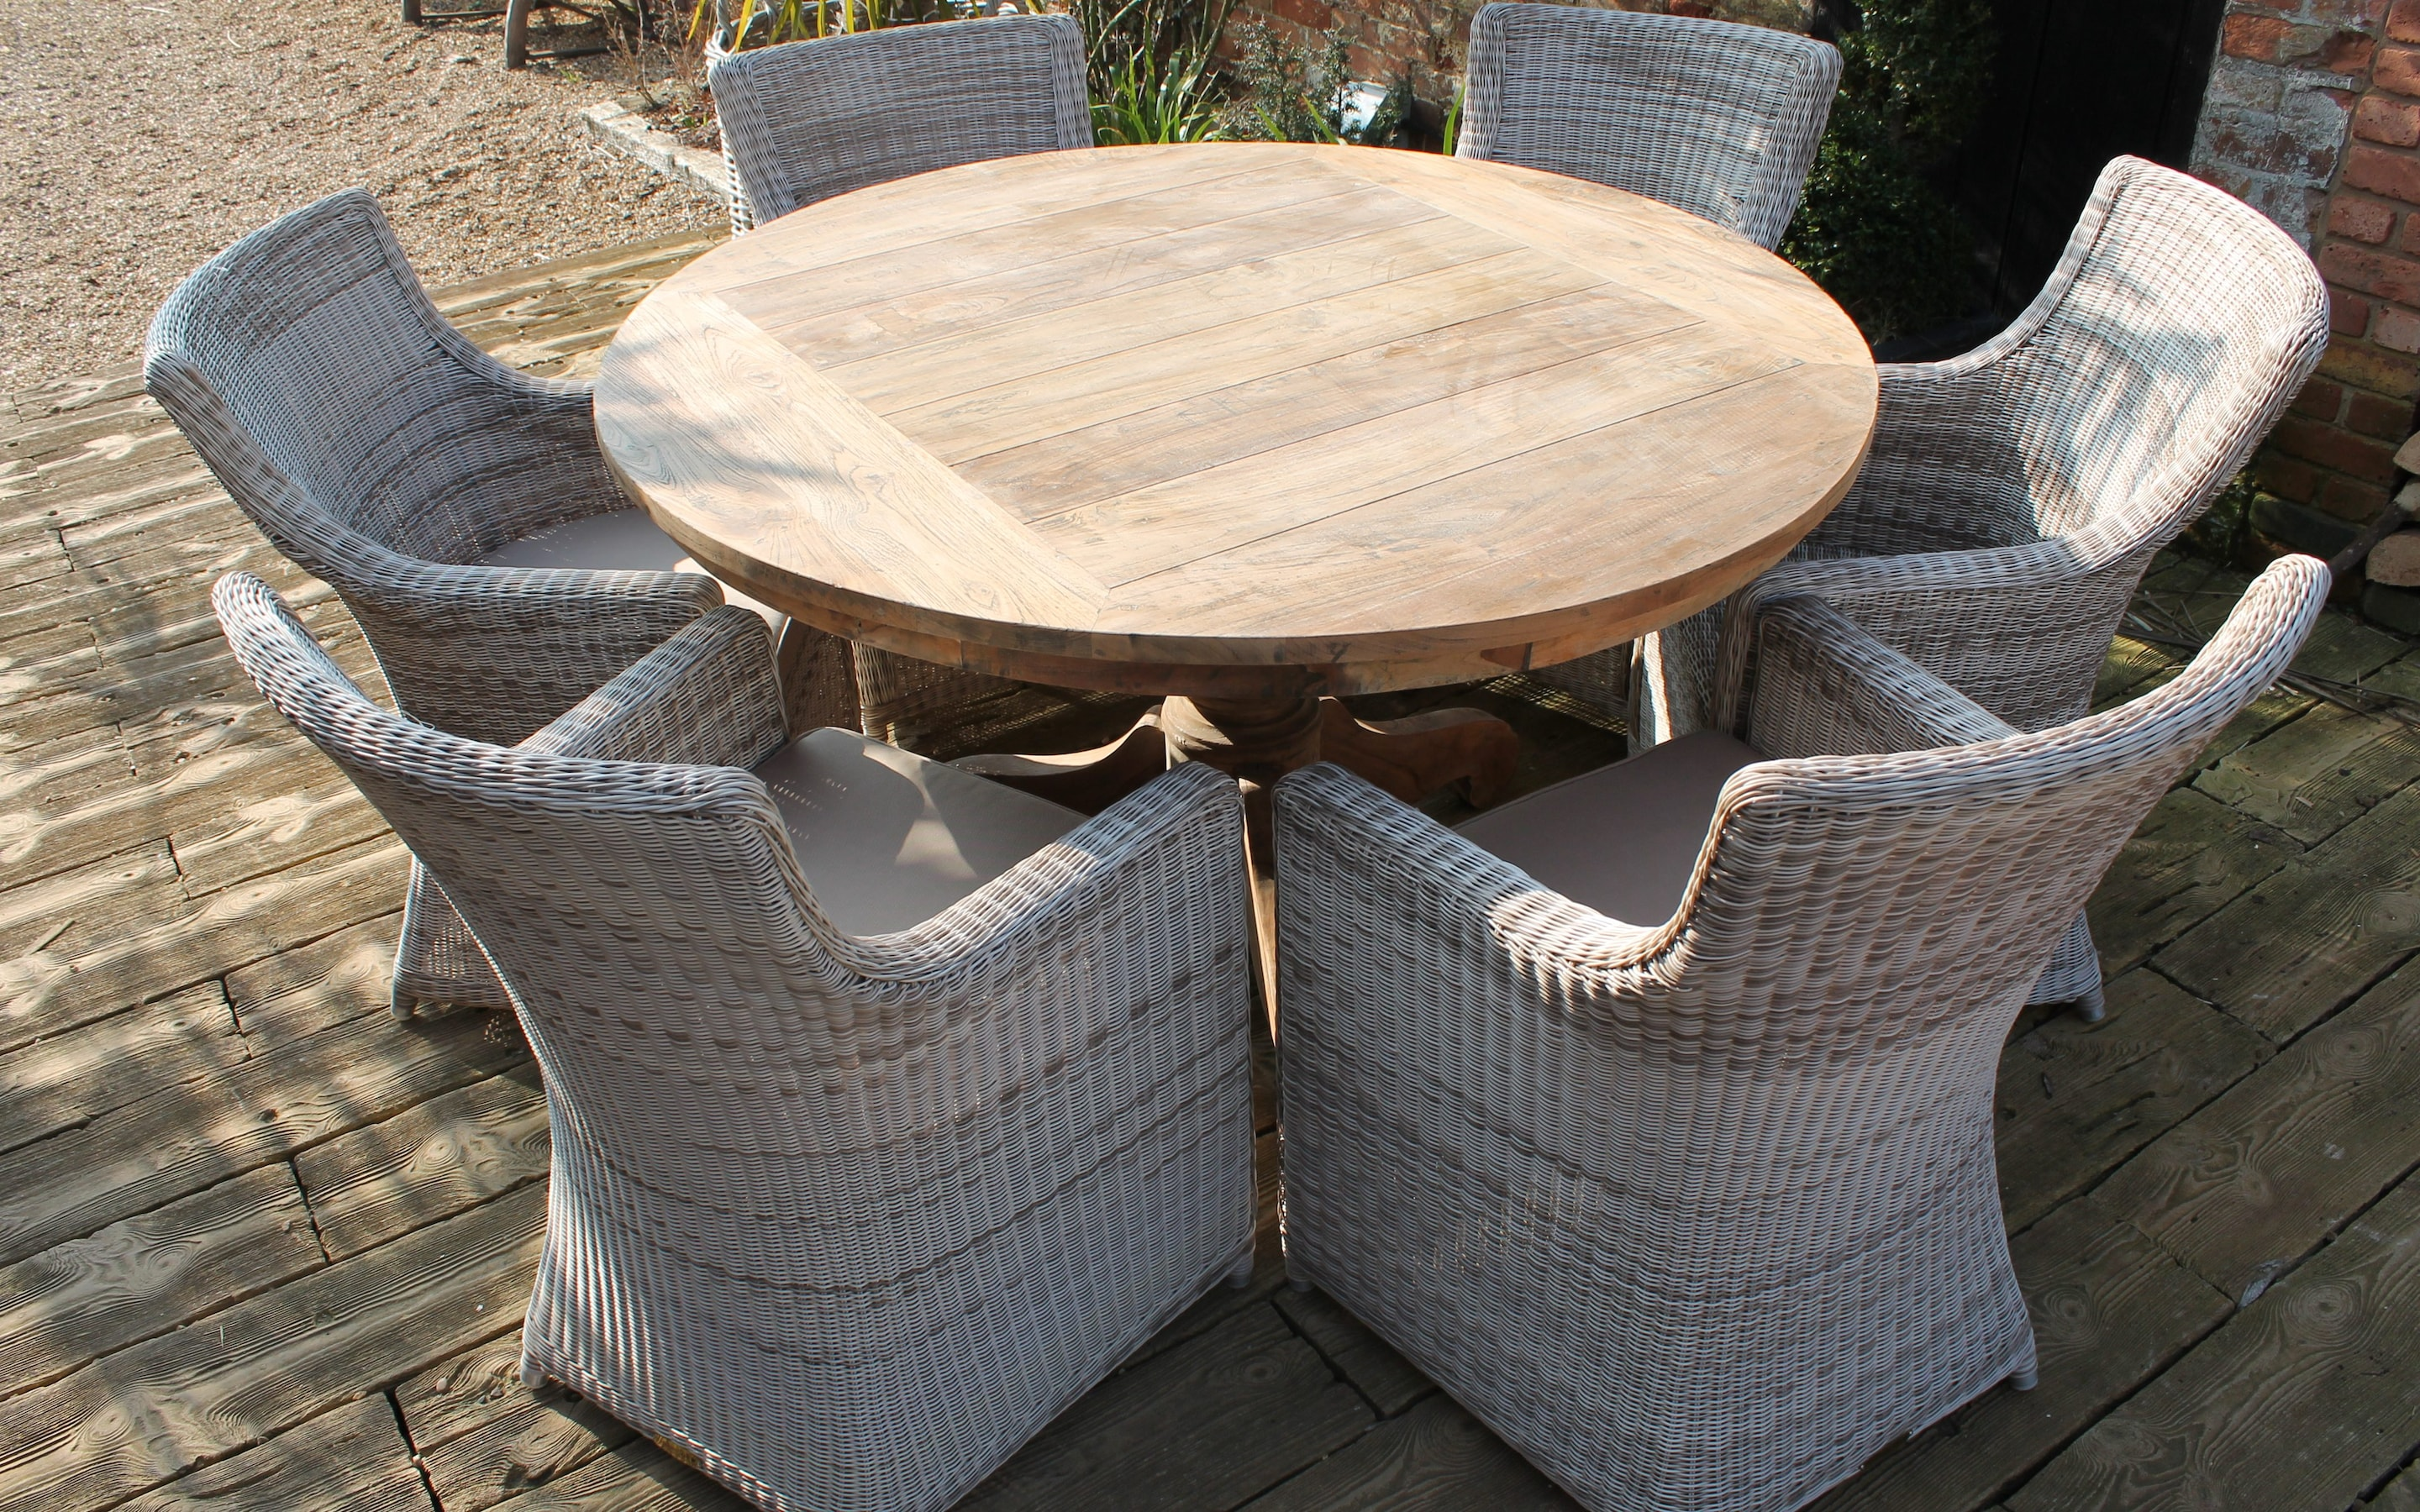 Best Rattan Garden Furniture And Where To Buy It Online The Telegraph - Garden Furniture Clearance Co Reviews